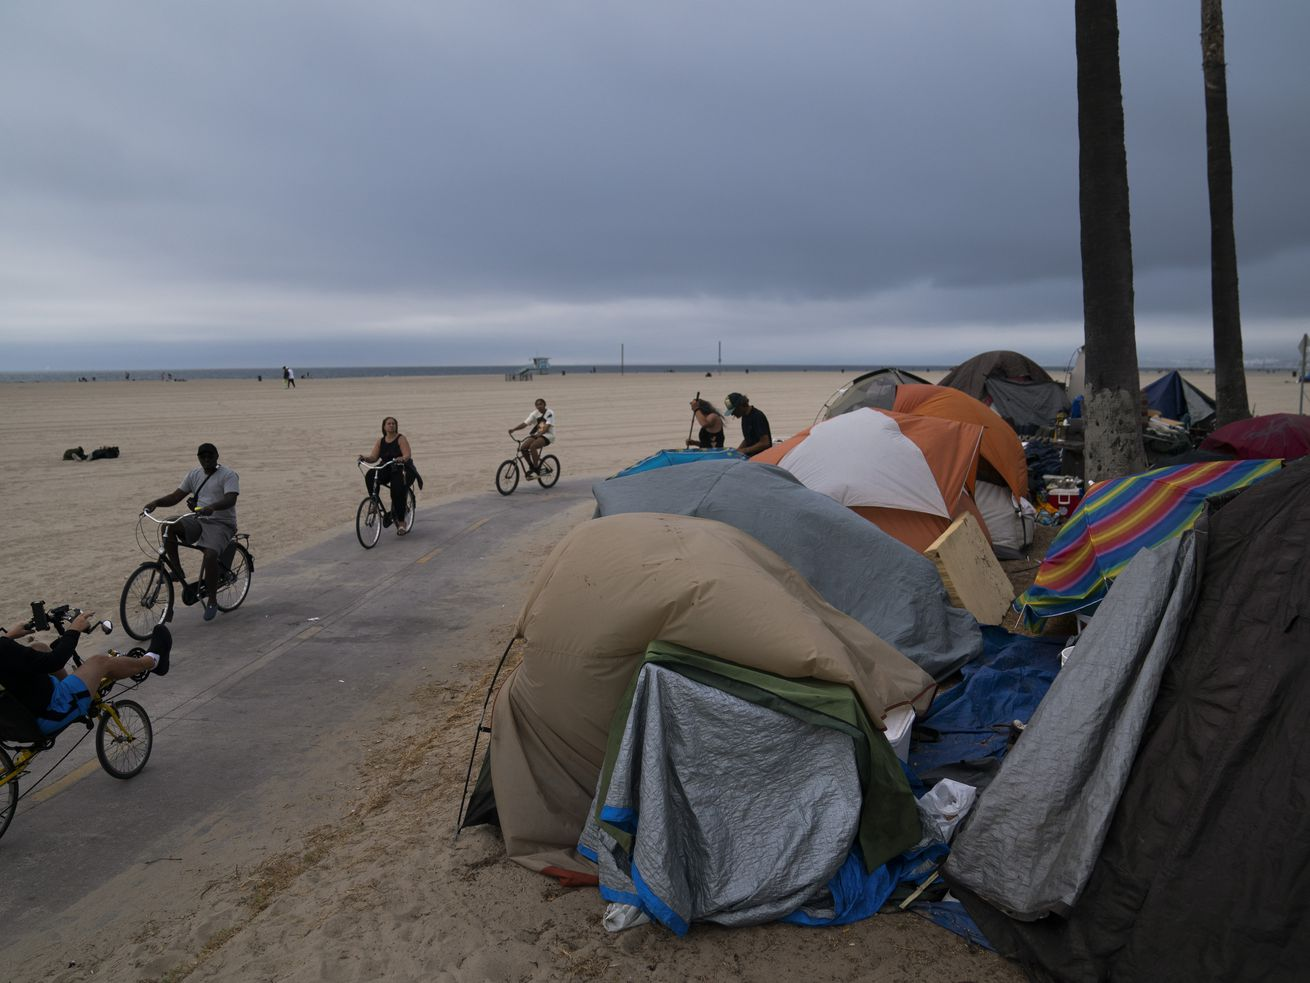 A homeless encampment set up along the boardwalk in the Venice neighborhood of Los Angeles in June 2021.